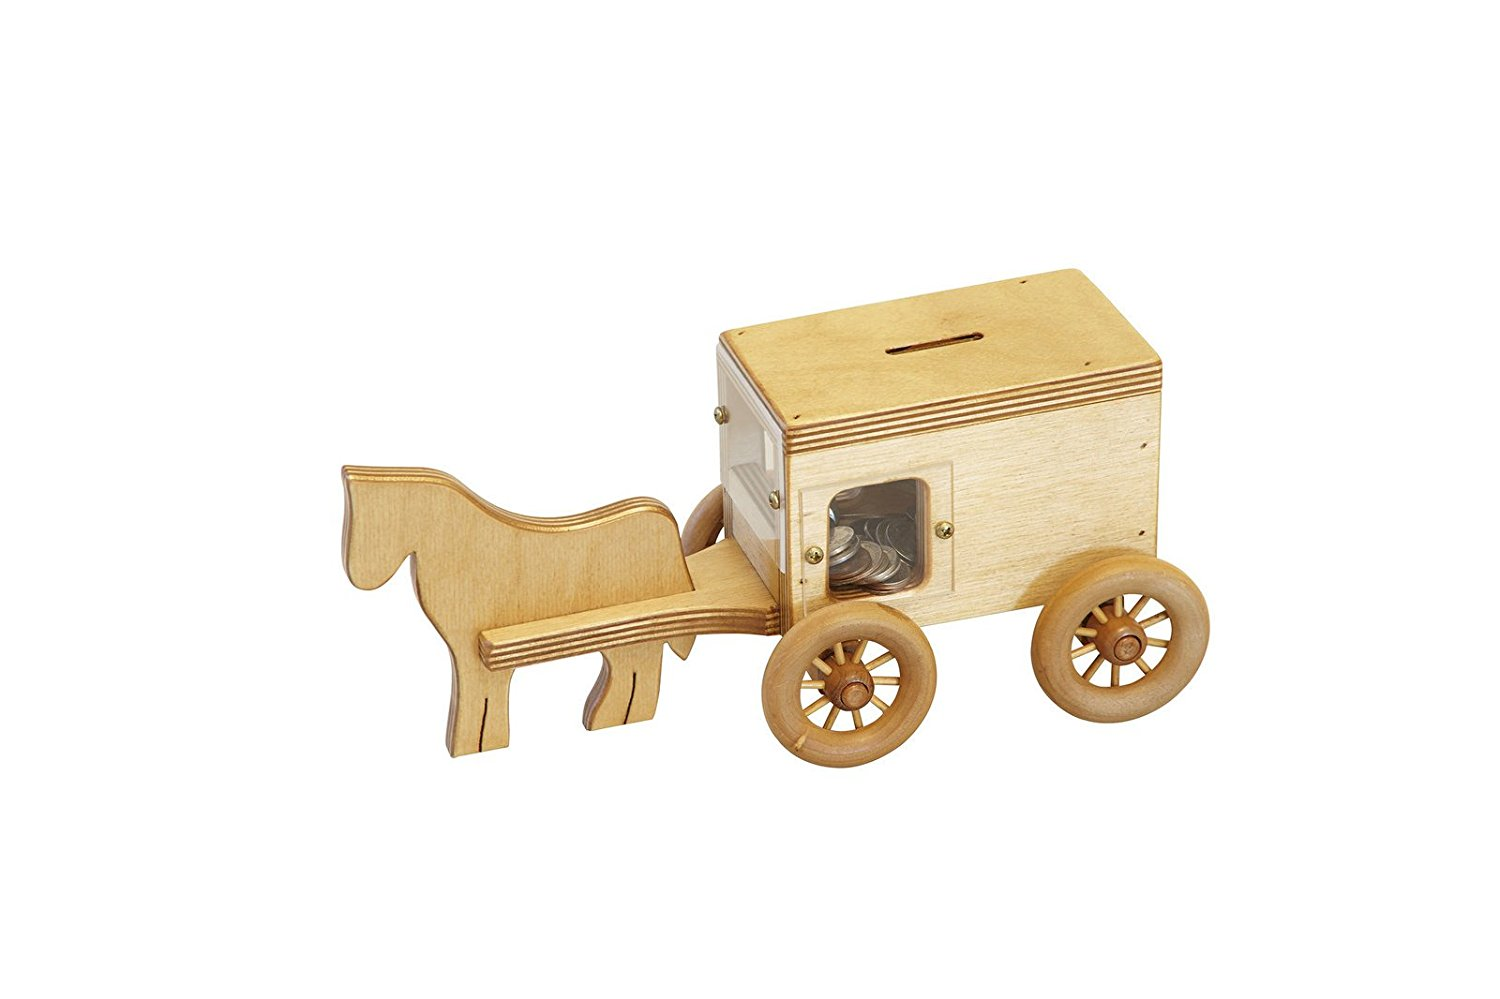 Amish-Made Wooden Toy Horse & Buggy Penny Bank